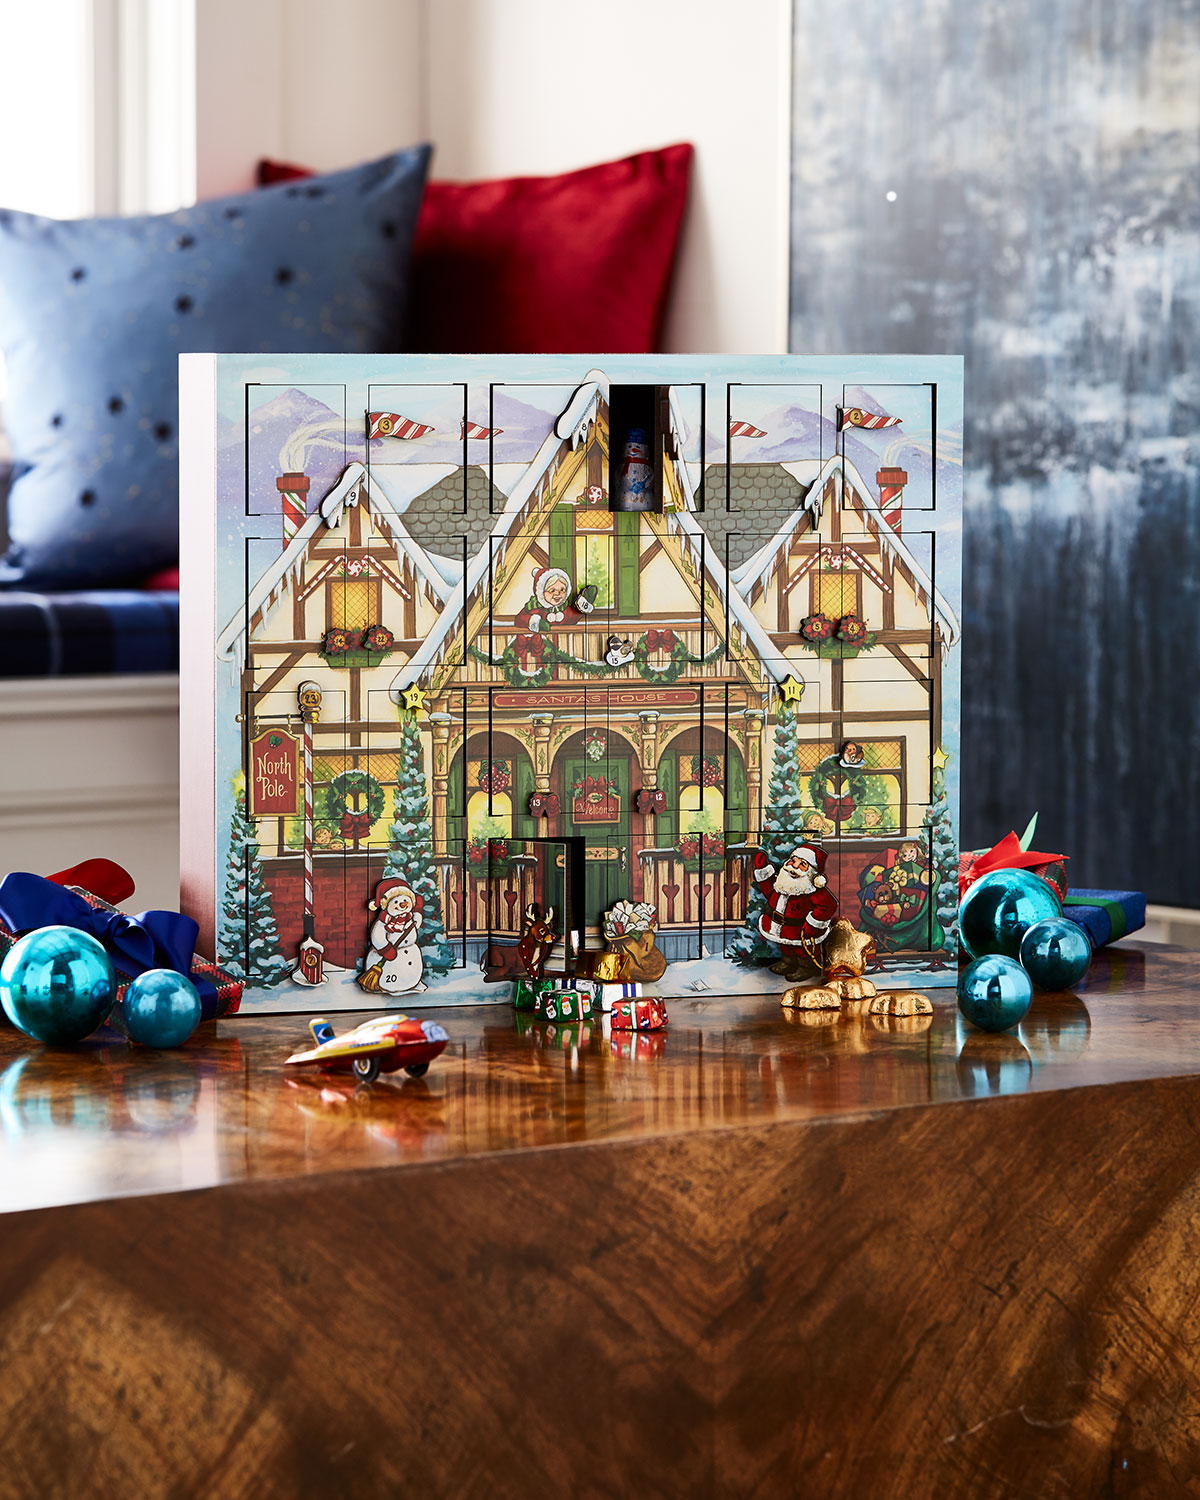 Wooden advent calendar filled with tiny ornaments, surrounded by glass ornaments and sitting on a wooden table.